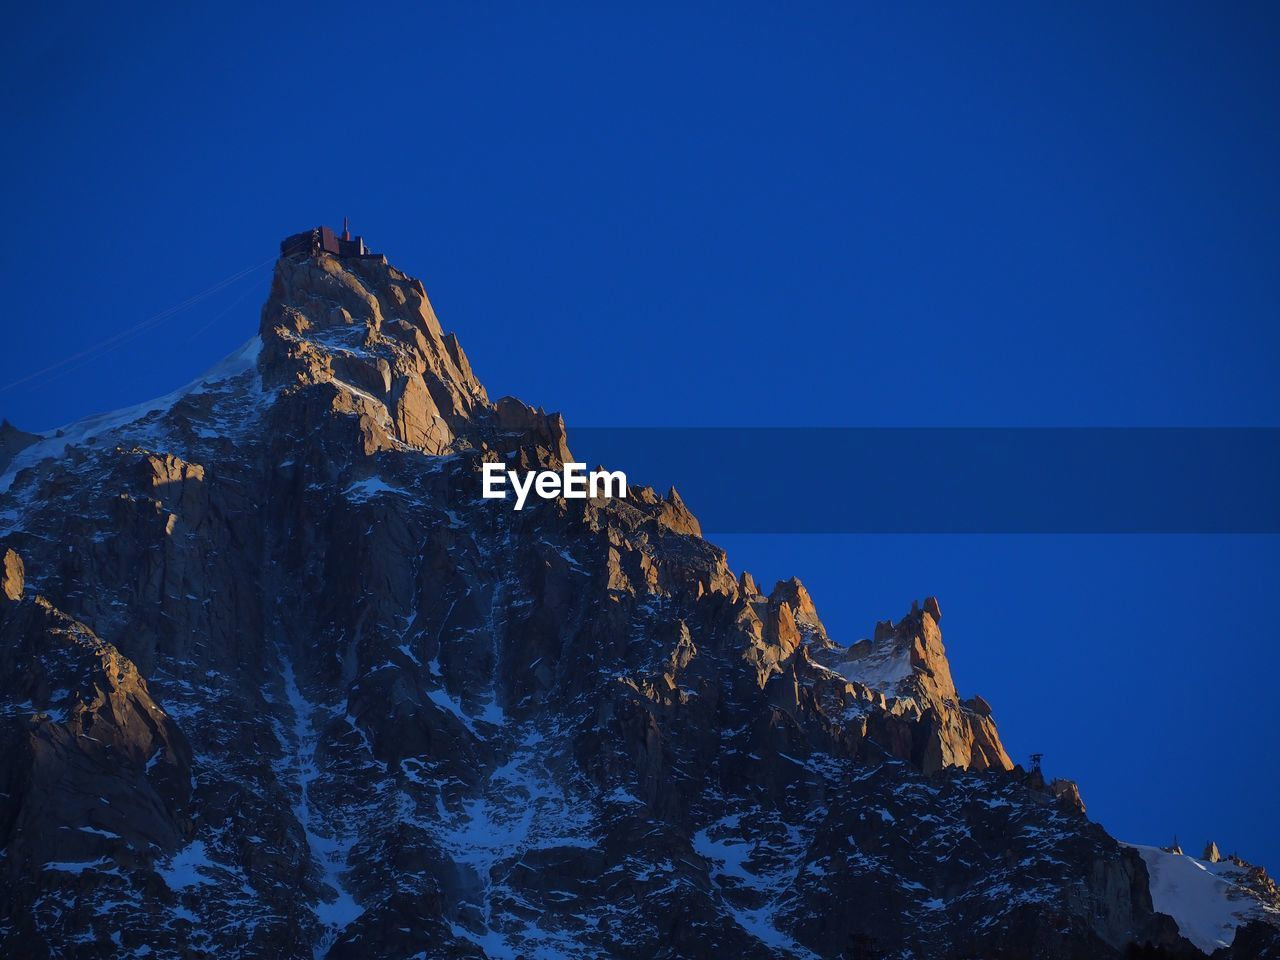 VIEW OF MOUNTAIN AGAINST BLUE SKY